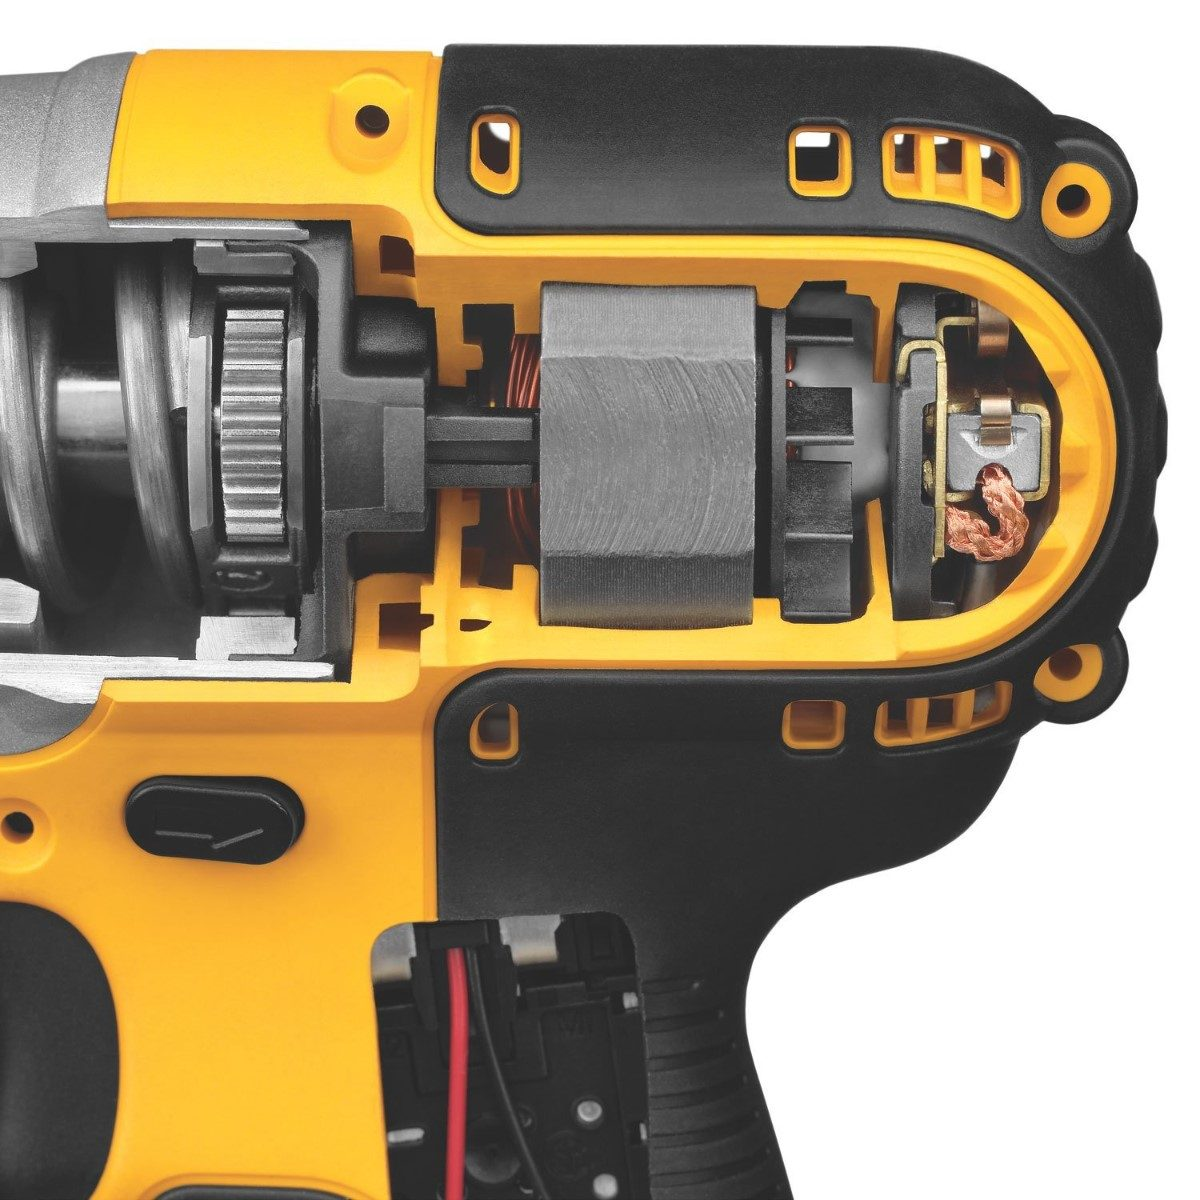 Milwaukee tools reboots their lineup together with DeWalt DCD950VX 18V 1 2 XRP Hammerdrill Drill Driver Kit With Vehicle Charger besides Makita Dhr242z 18v Cordless Li Ion Sds Plus Brushless 3 Mode Rotary Hammer Drill P67795 besides Dewalt Dc988 18volt  bi Hammer Drill Deal Pi 22316 besides Makita 18v X2 Cordless Chain Saw. on dewalt 18 volt hammer drill